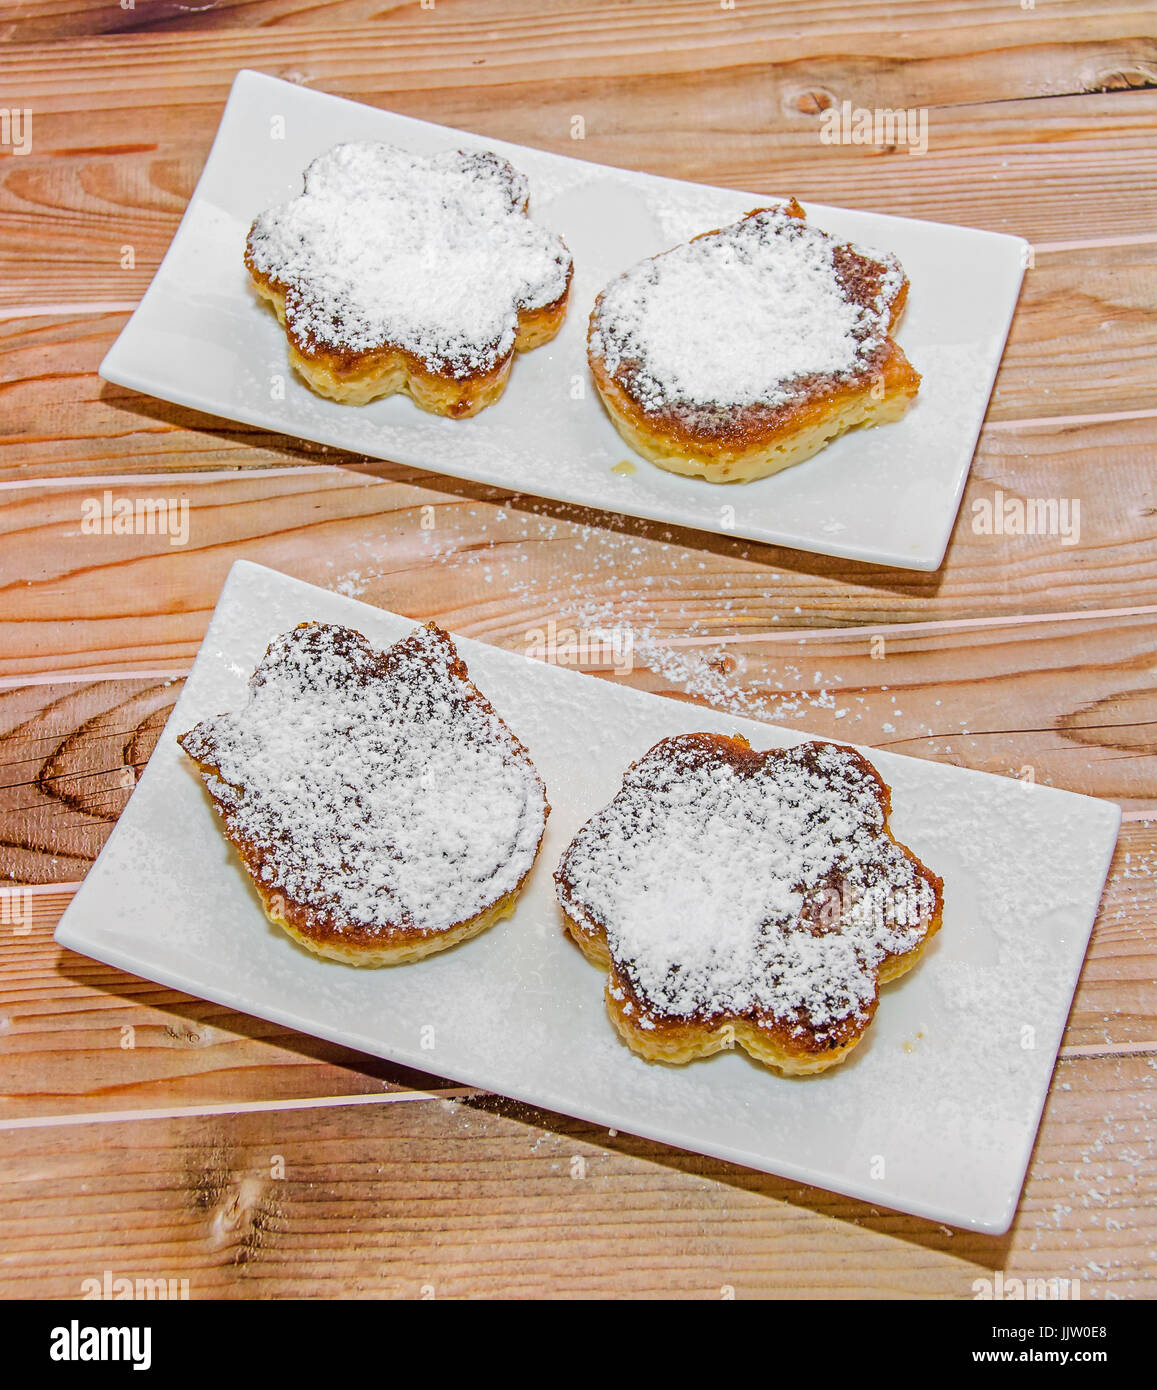 Homemade Creme brulee with powder sugar,  burnt cream, crema catalana, or Trinity cream, white plate and wood background. - Stock Image